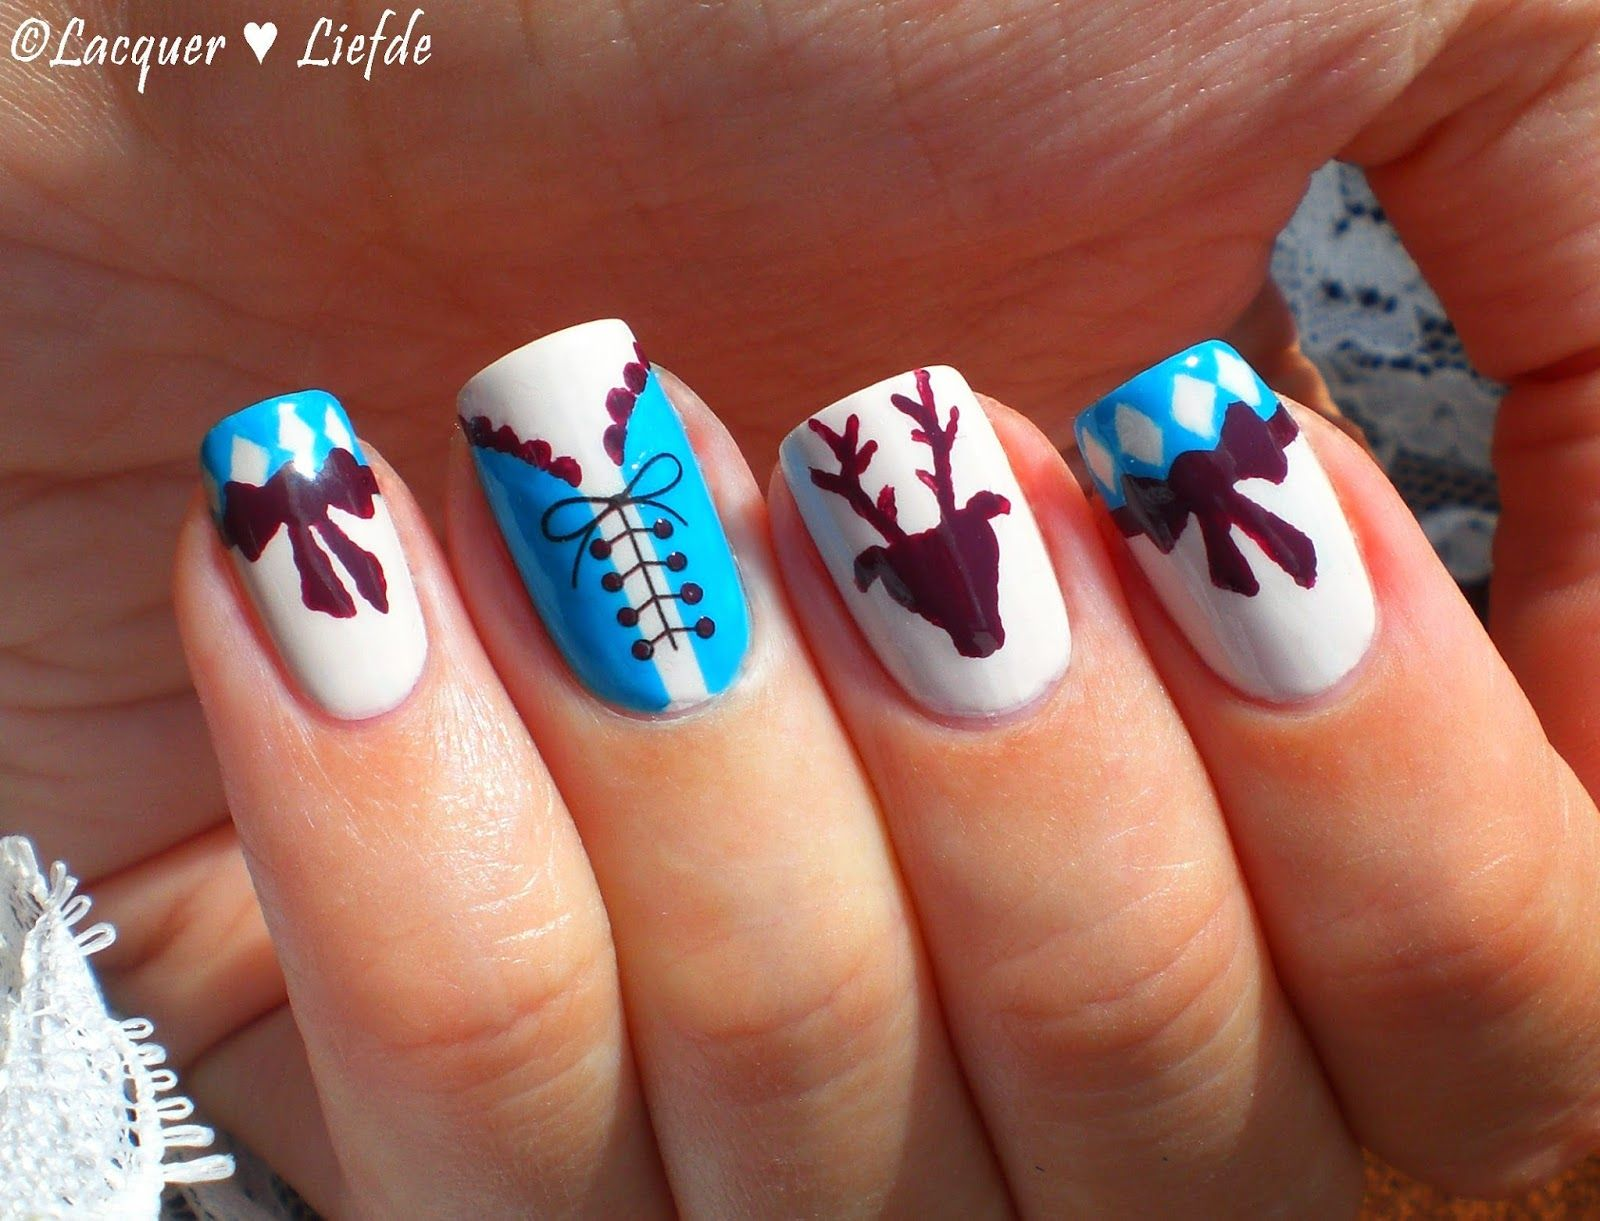 Oktoberfest Nagel Design | Nails | Pinterest